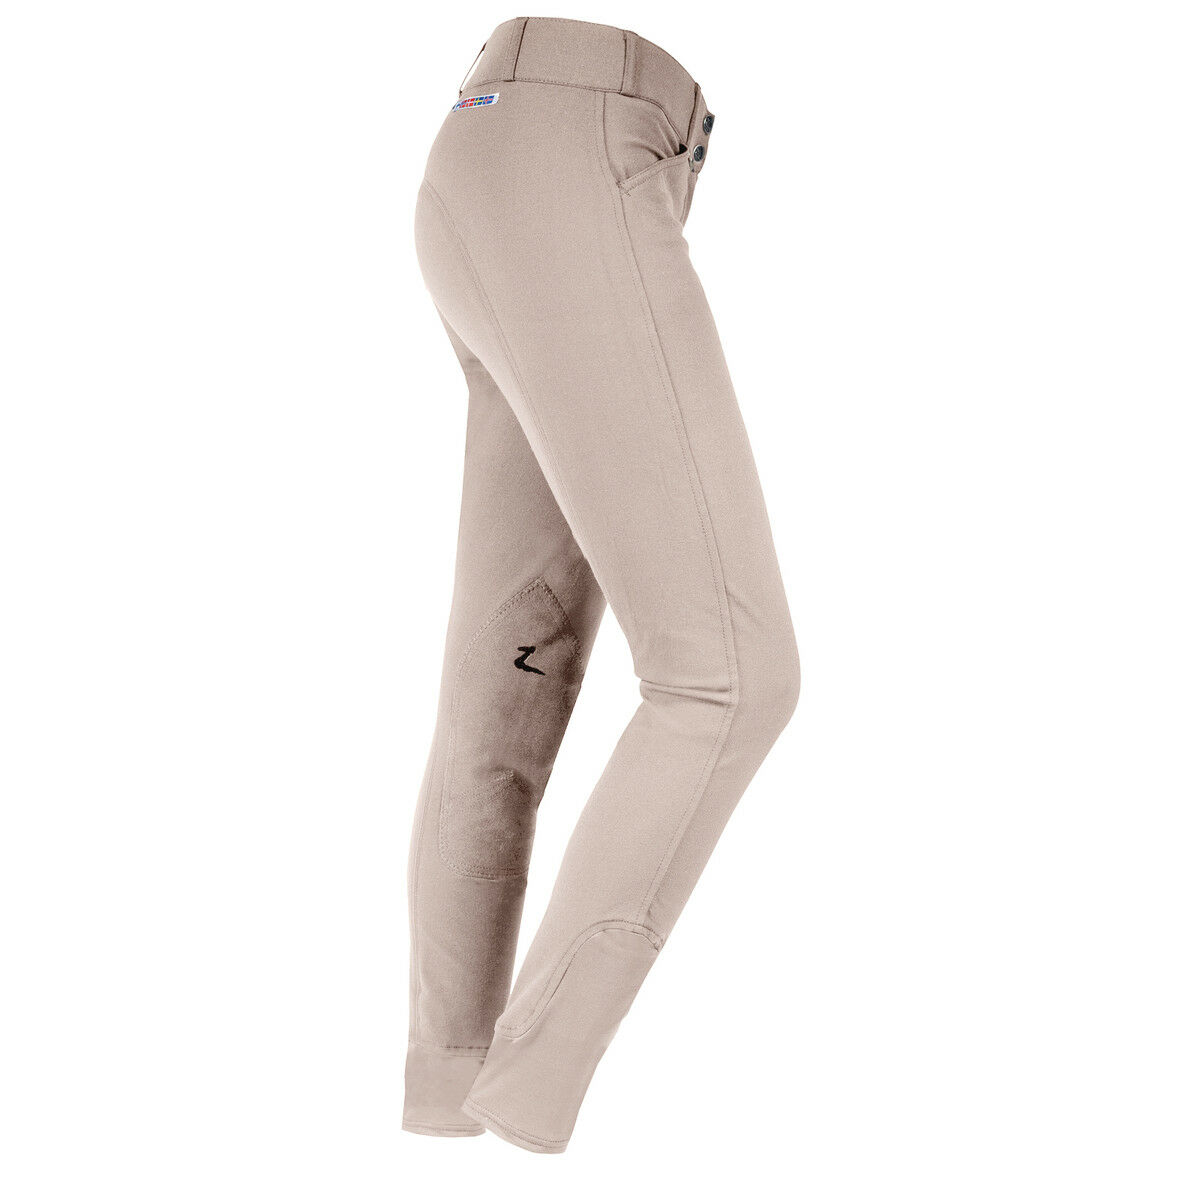 Horze Gre Prix Extend donna equitazione Breeches with Leather Knee Patches